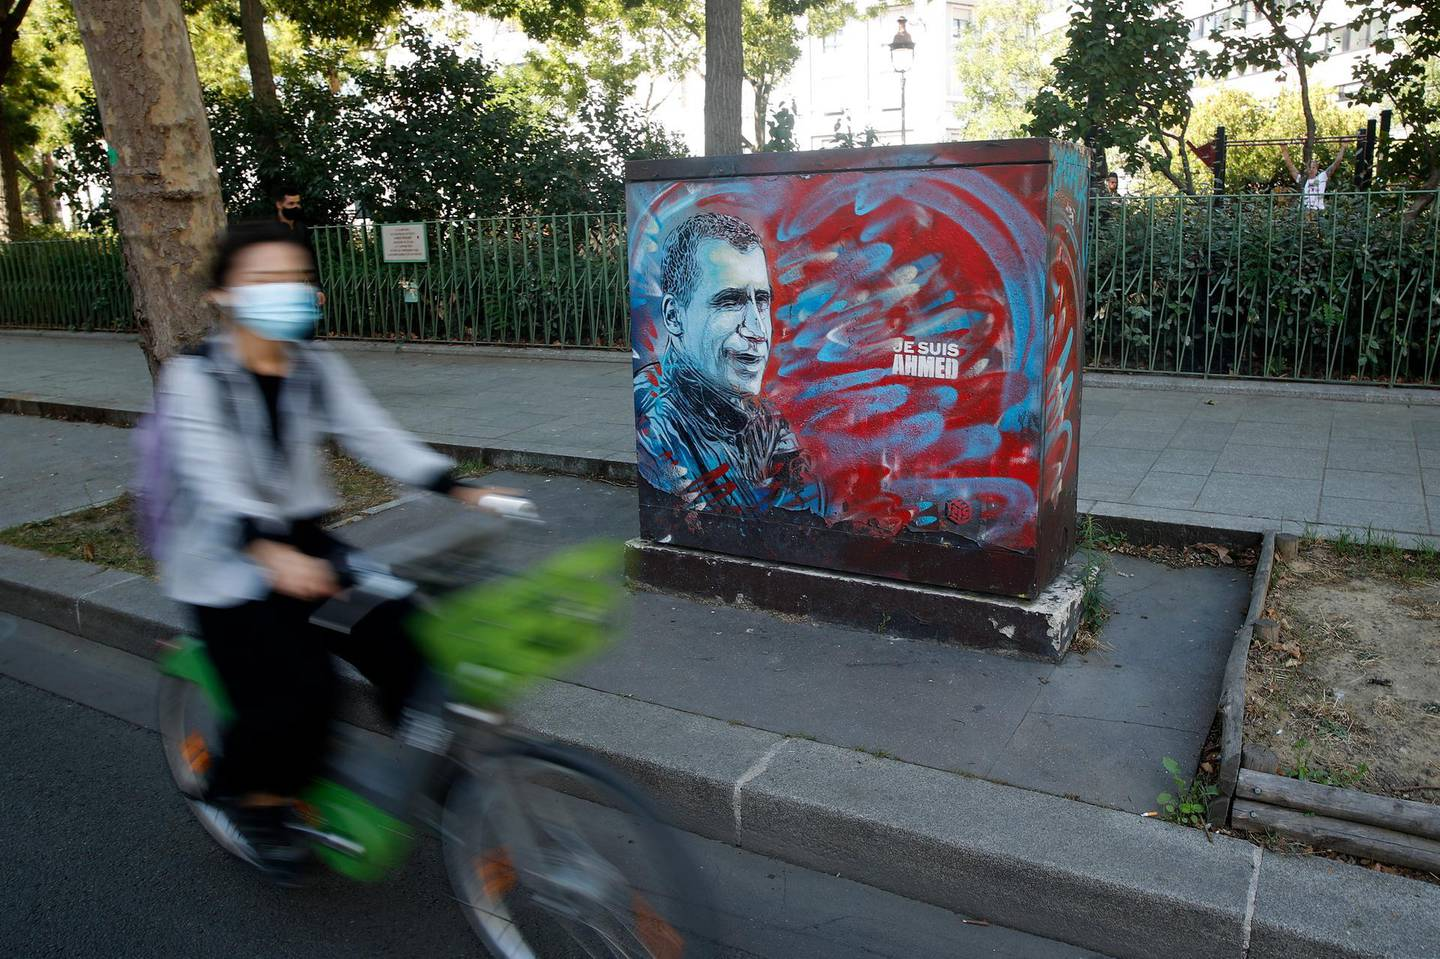 epa08641145 A cyclist passes by a mural depicting police officer Ahmed Merabet who was shot dead by gunmen following the 07 January 2015 attack on Charlie Hebdo, on the opening day of the attacks trial, in Paris, France, 02 September 2020. The Charlie Hebdo terrorist attacks in Paris happened on 07 January 2015, with the storming of armed Islamist extremists of the satirical newspaper, starting three days of terror in the French capital.  EPA/YOAN VALAT